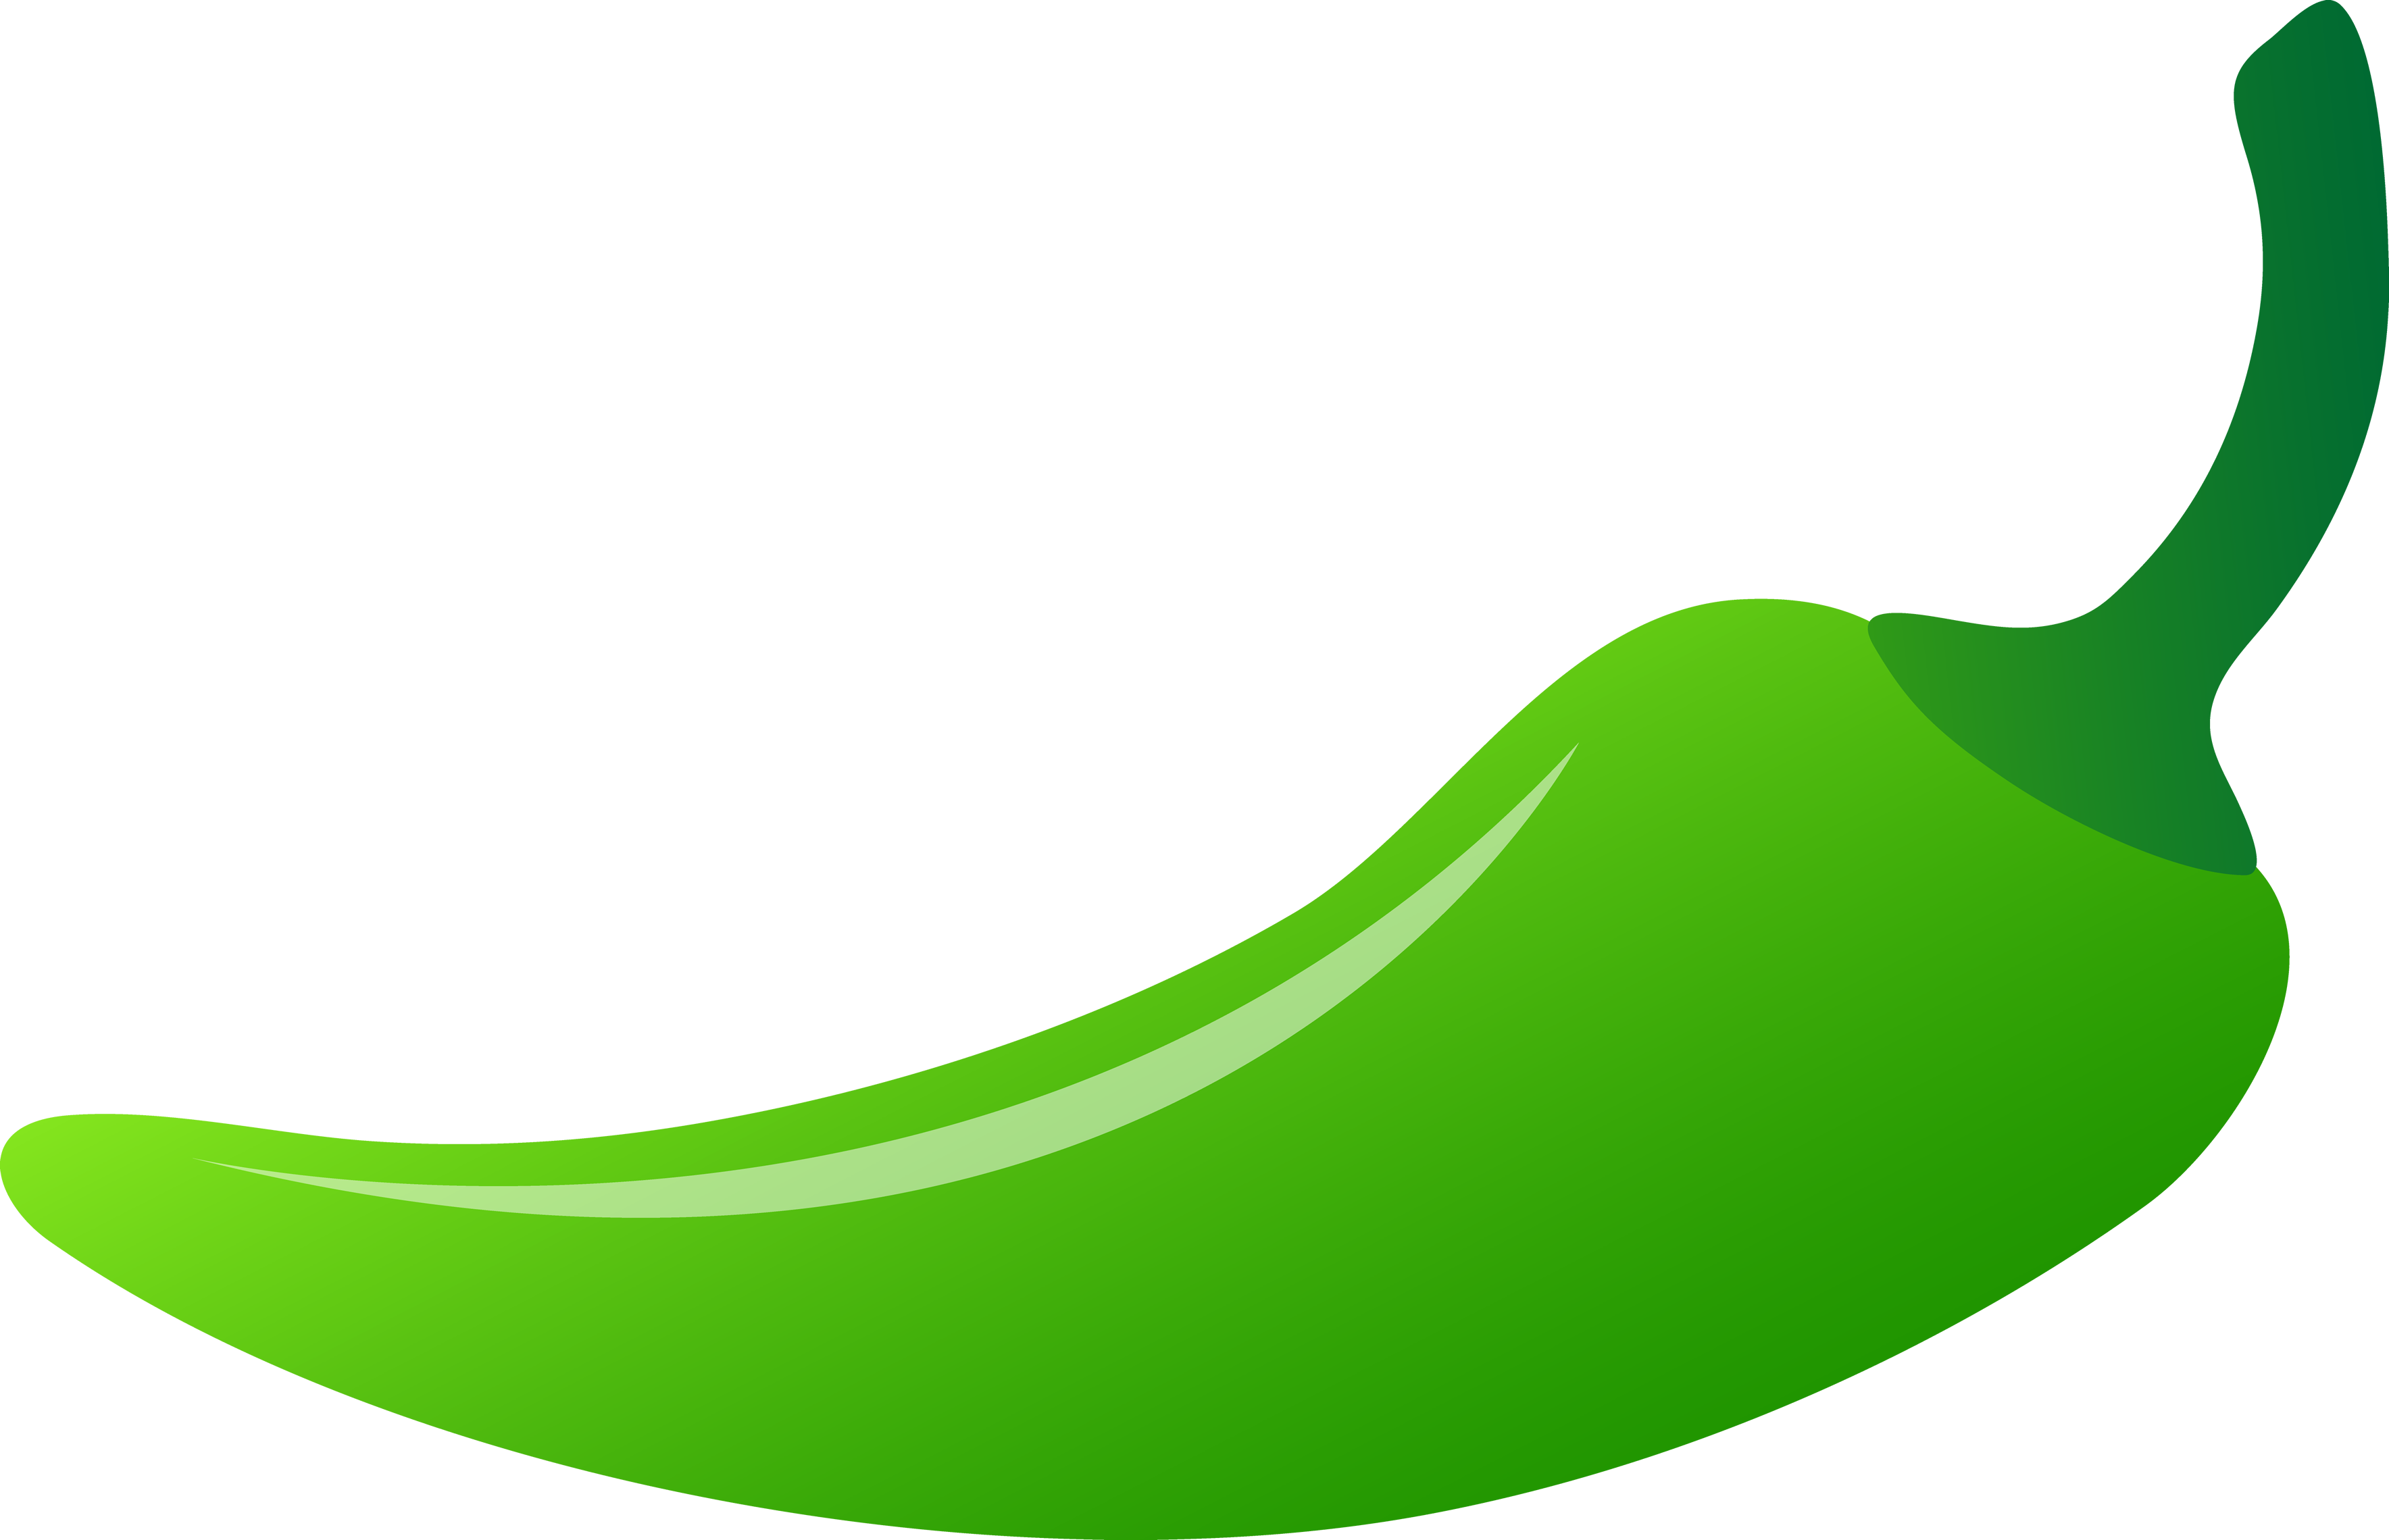 Green pepper PNG image - Jalapeno PNG HD